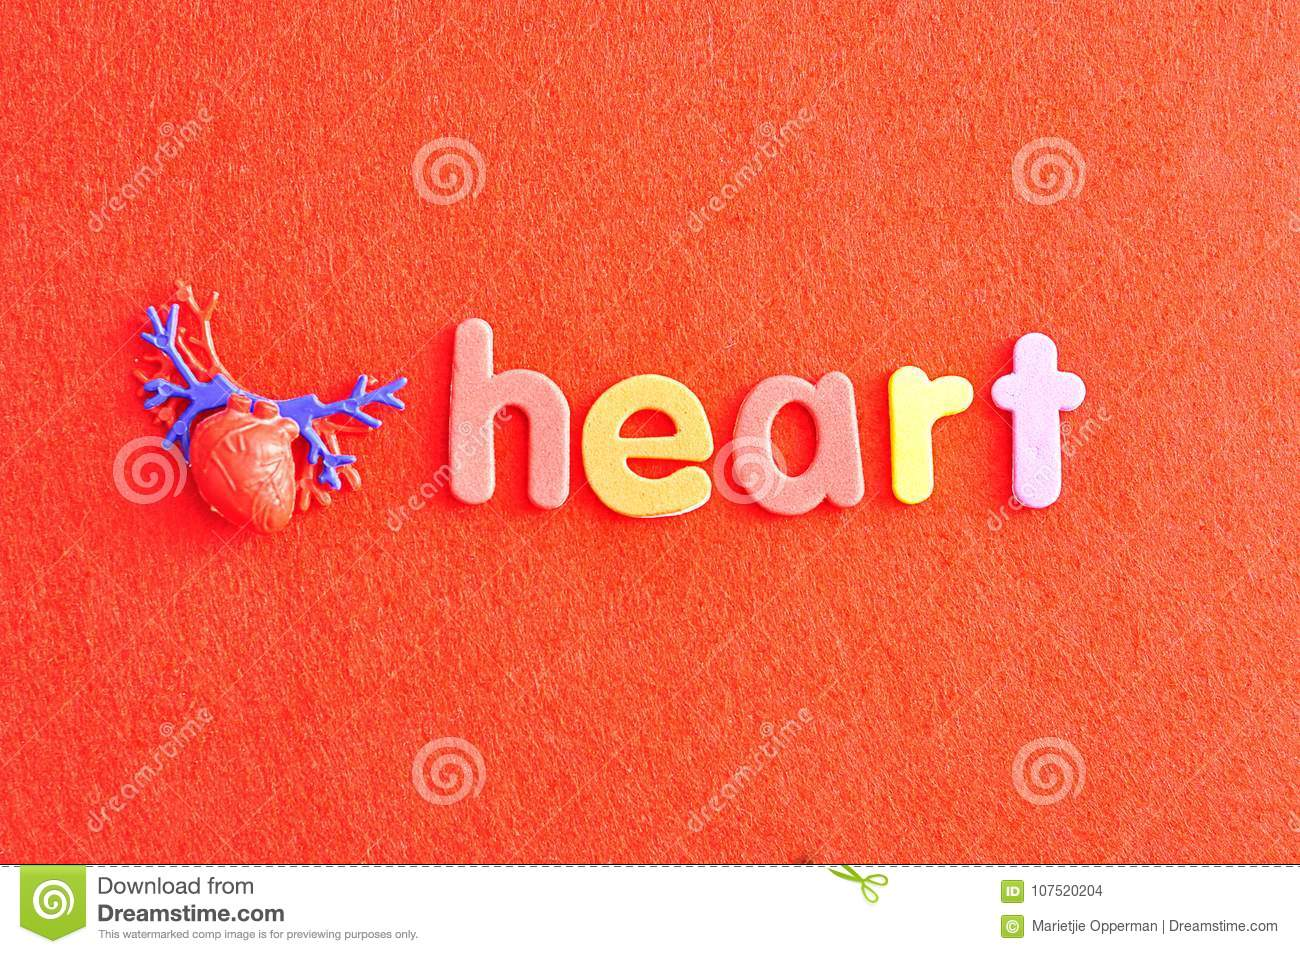 A plastic model of a human heart with the word heart